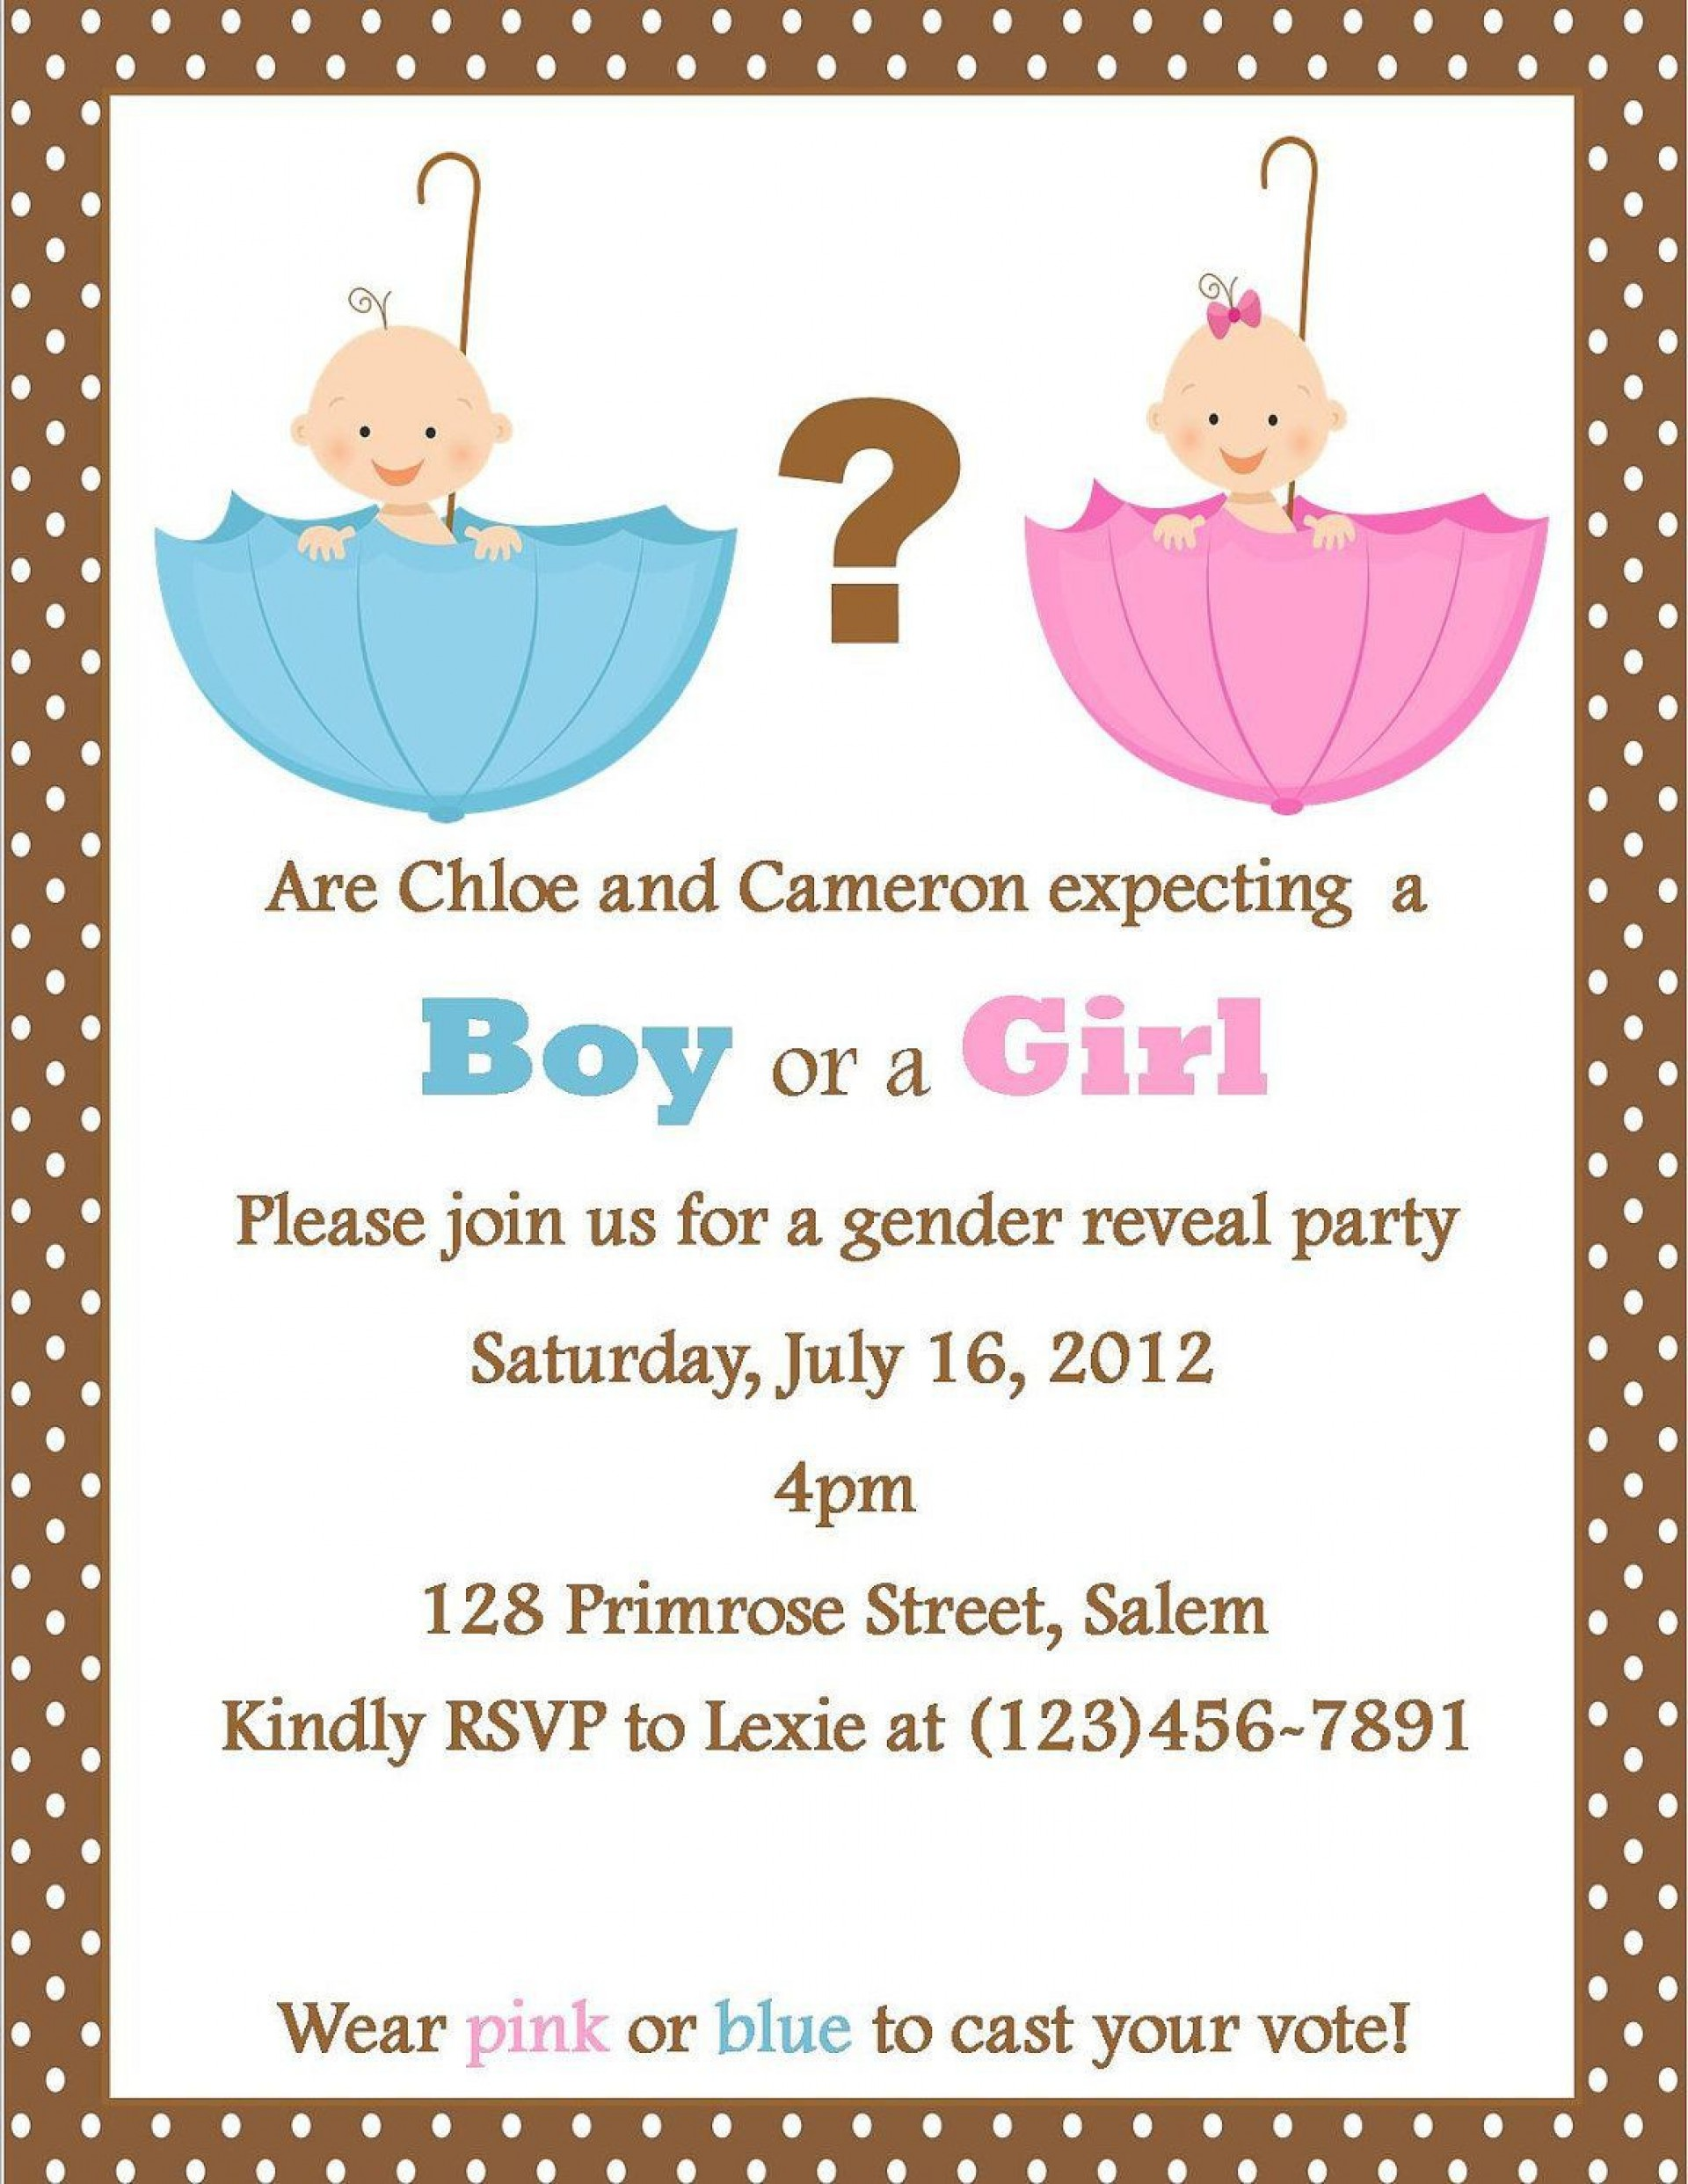 002 Best Gender Reveal Invitation Template High Resolution  Templates Party Free Printable Maker1920